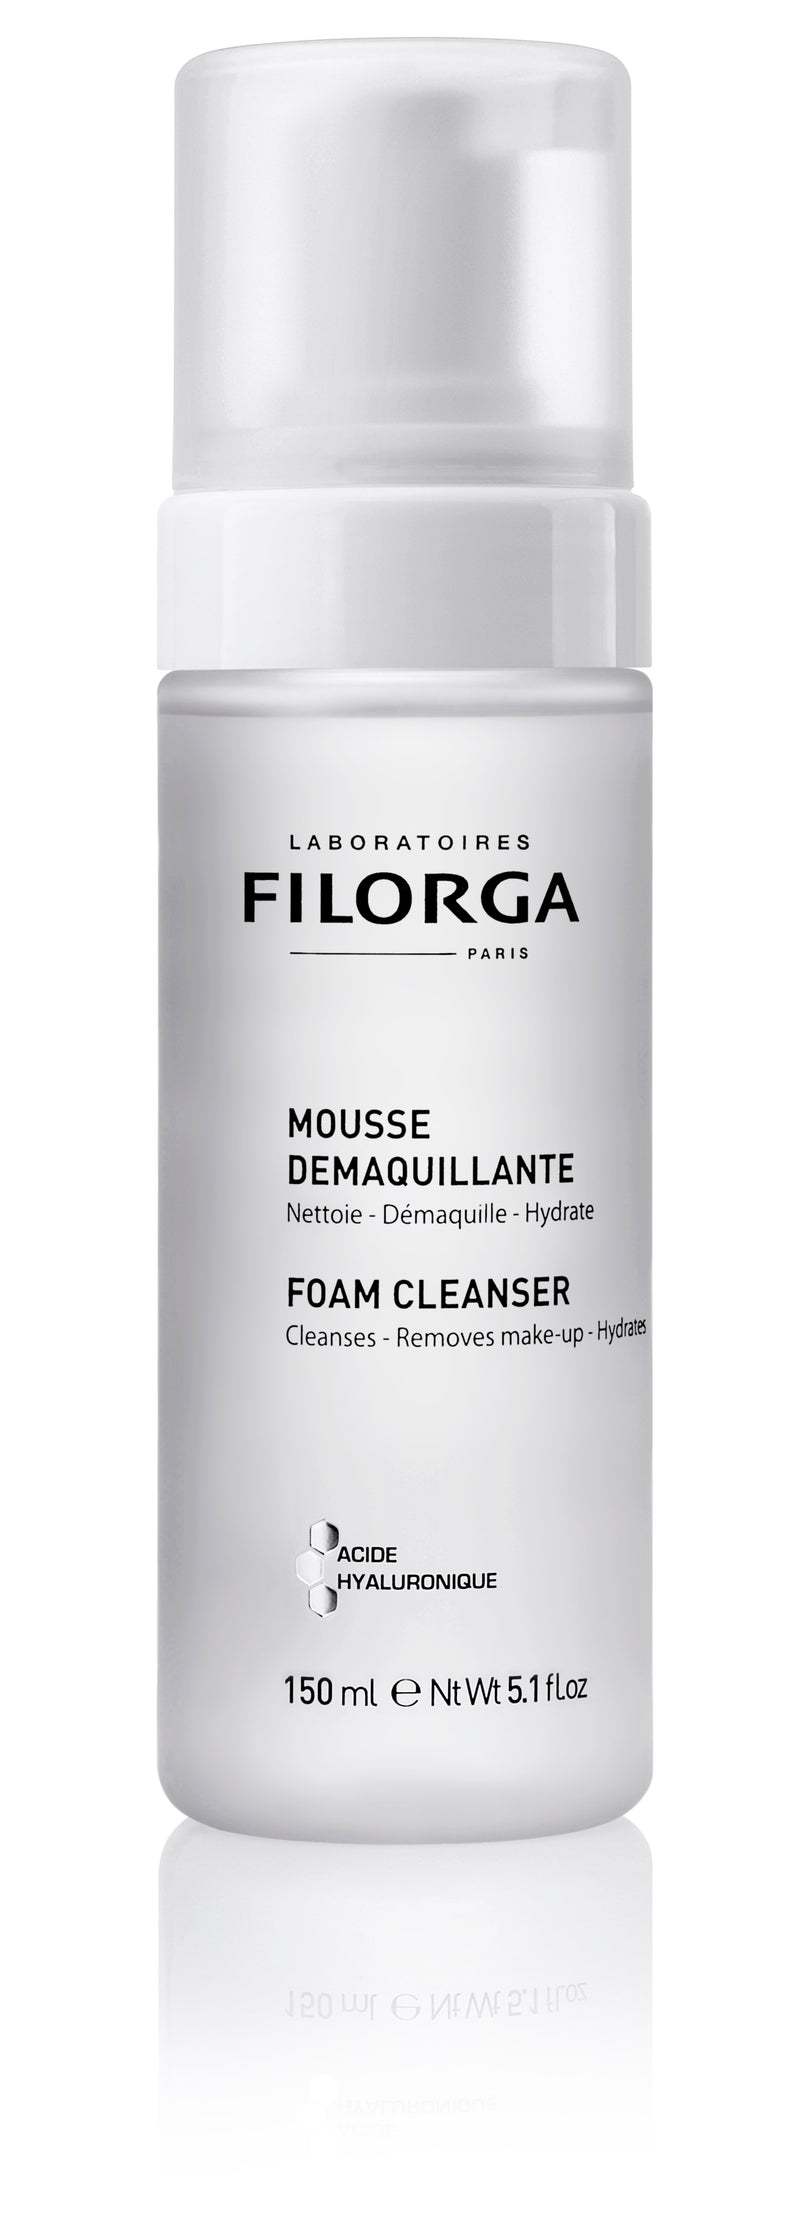 FILORGA Foam Cleanser: Anti-Ageing Cleanser